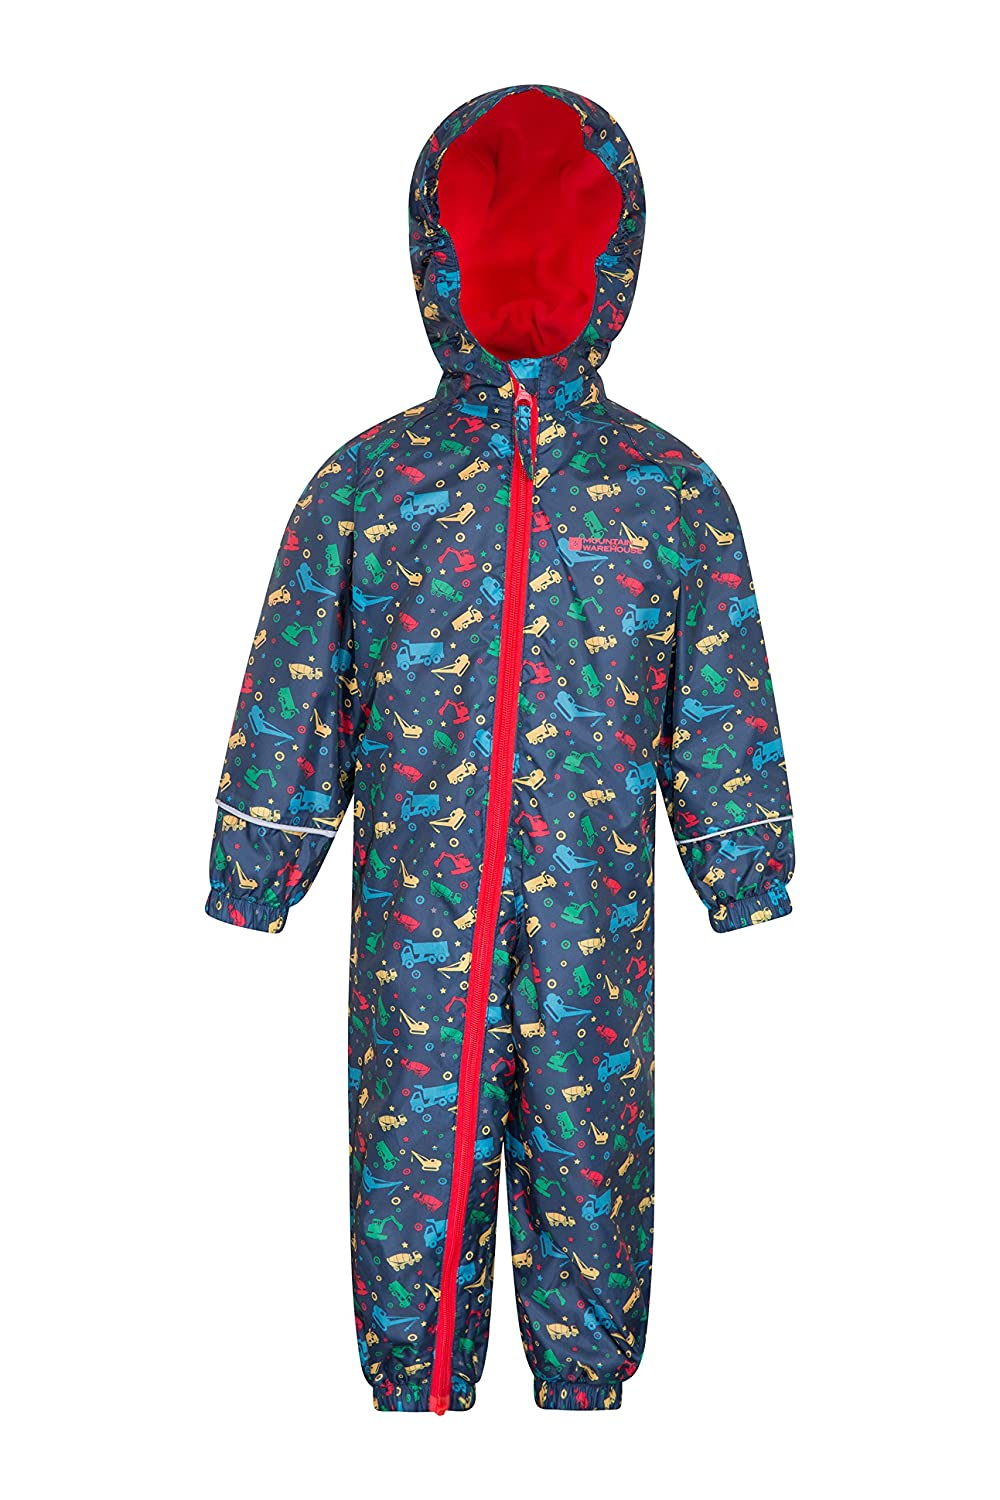 Mountain Warehouse Spright Printed Rain Suit - Breathable Summer Suit, Waterproof Coat, Quick Dry, Taped Seams Kids Raincoat, Fleece Lined, High Viz - for Travelling